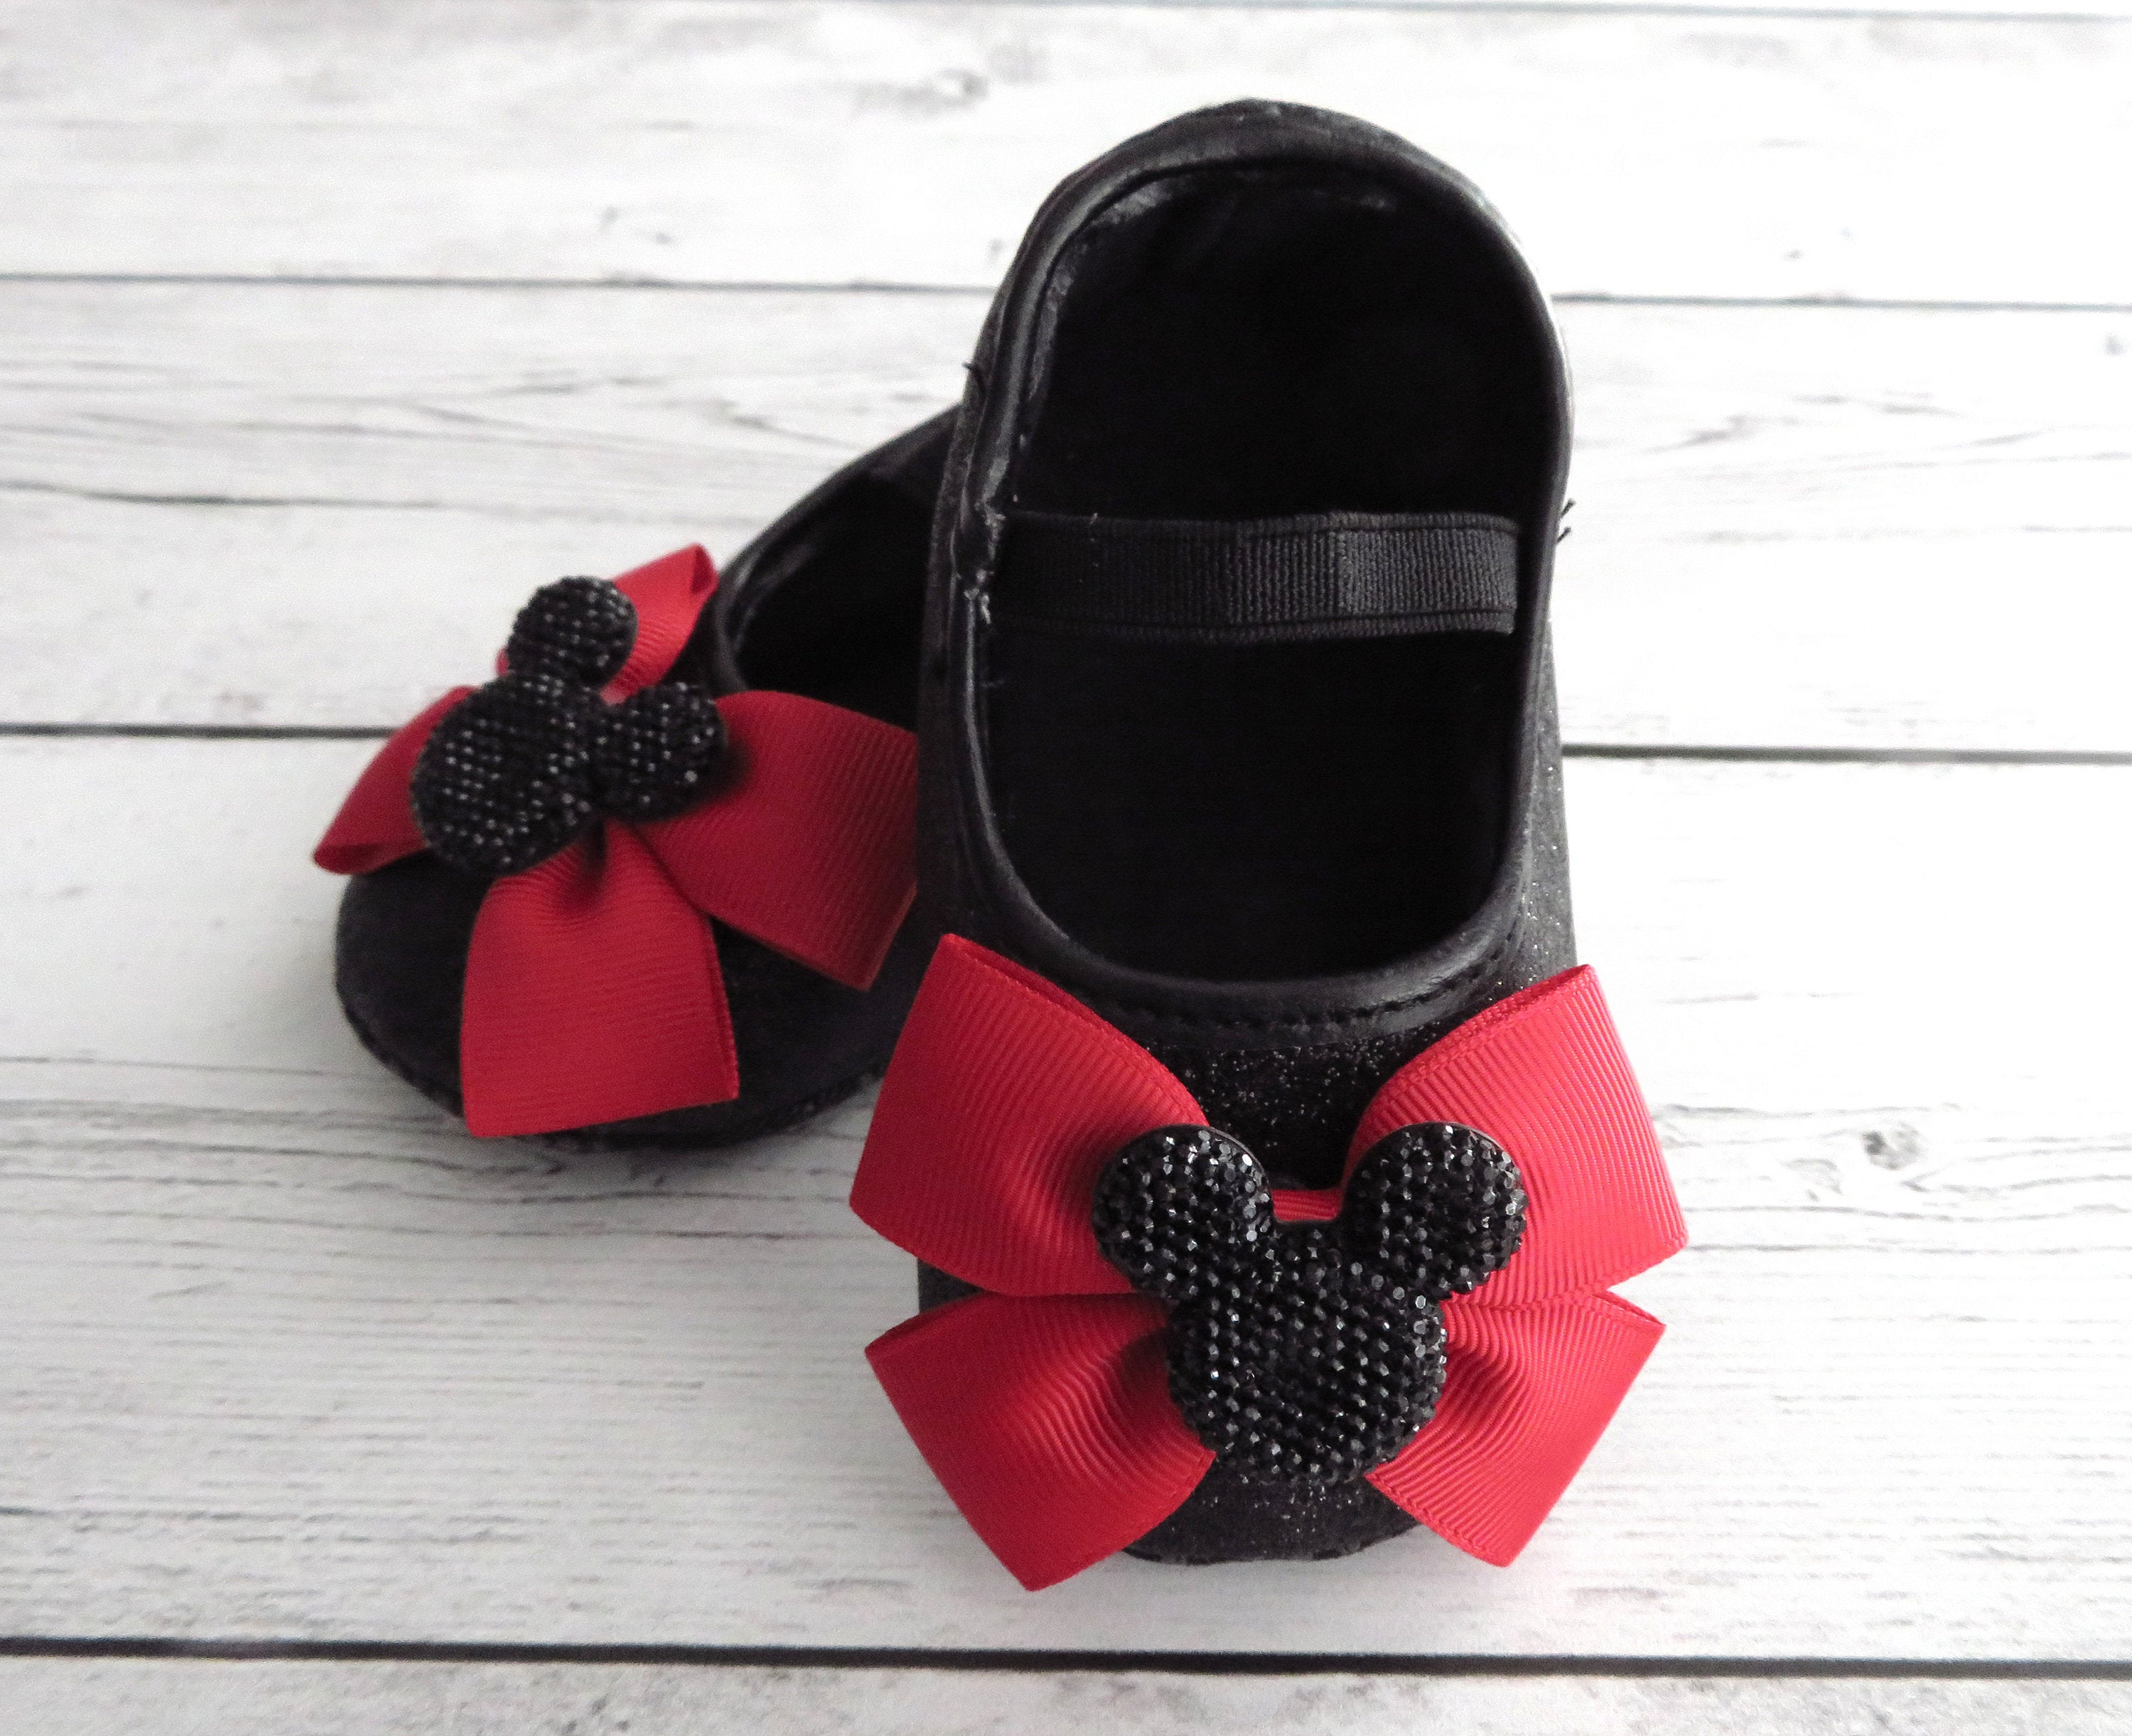 Minnie Mouse First Birthday Shoes for Girl -  black red shoes, 1st bday shoes, minnie mouse first birthday outfit, minnie shoes red